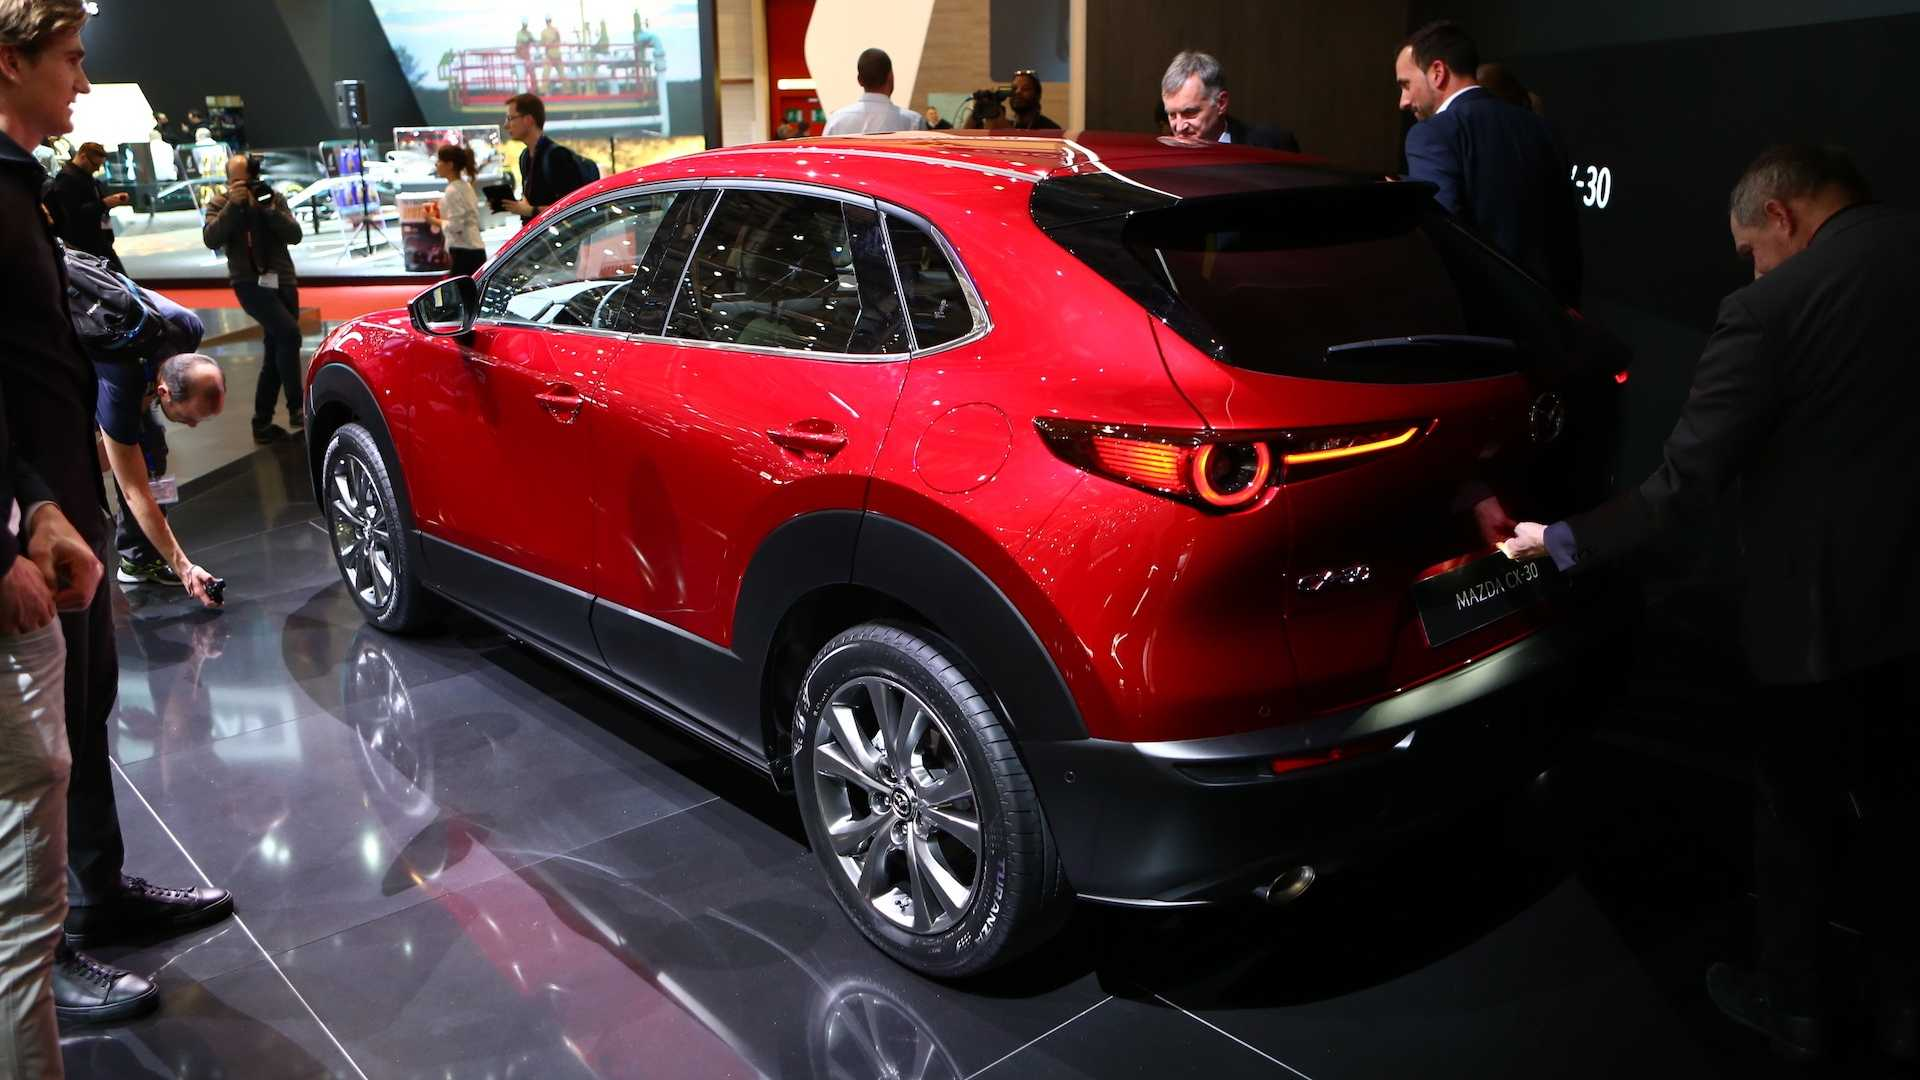 Difference Between Mazda 3 And 6 >> 2020 Mazda CX-30 Vs The Competition: What's The Difference?